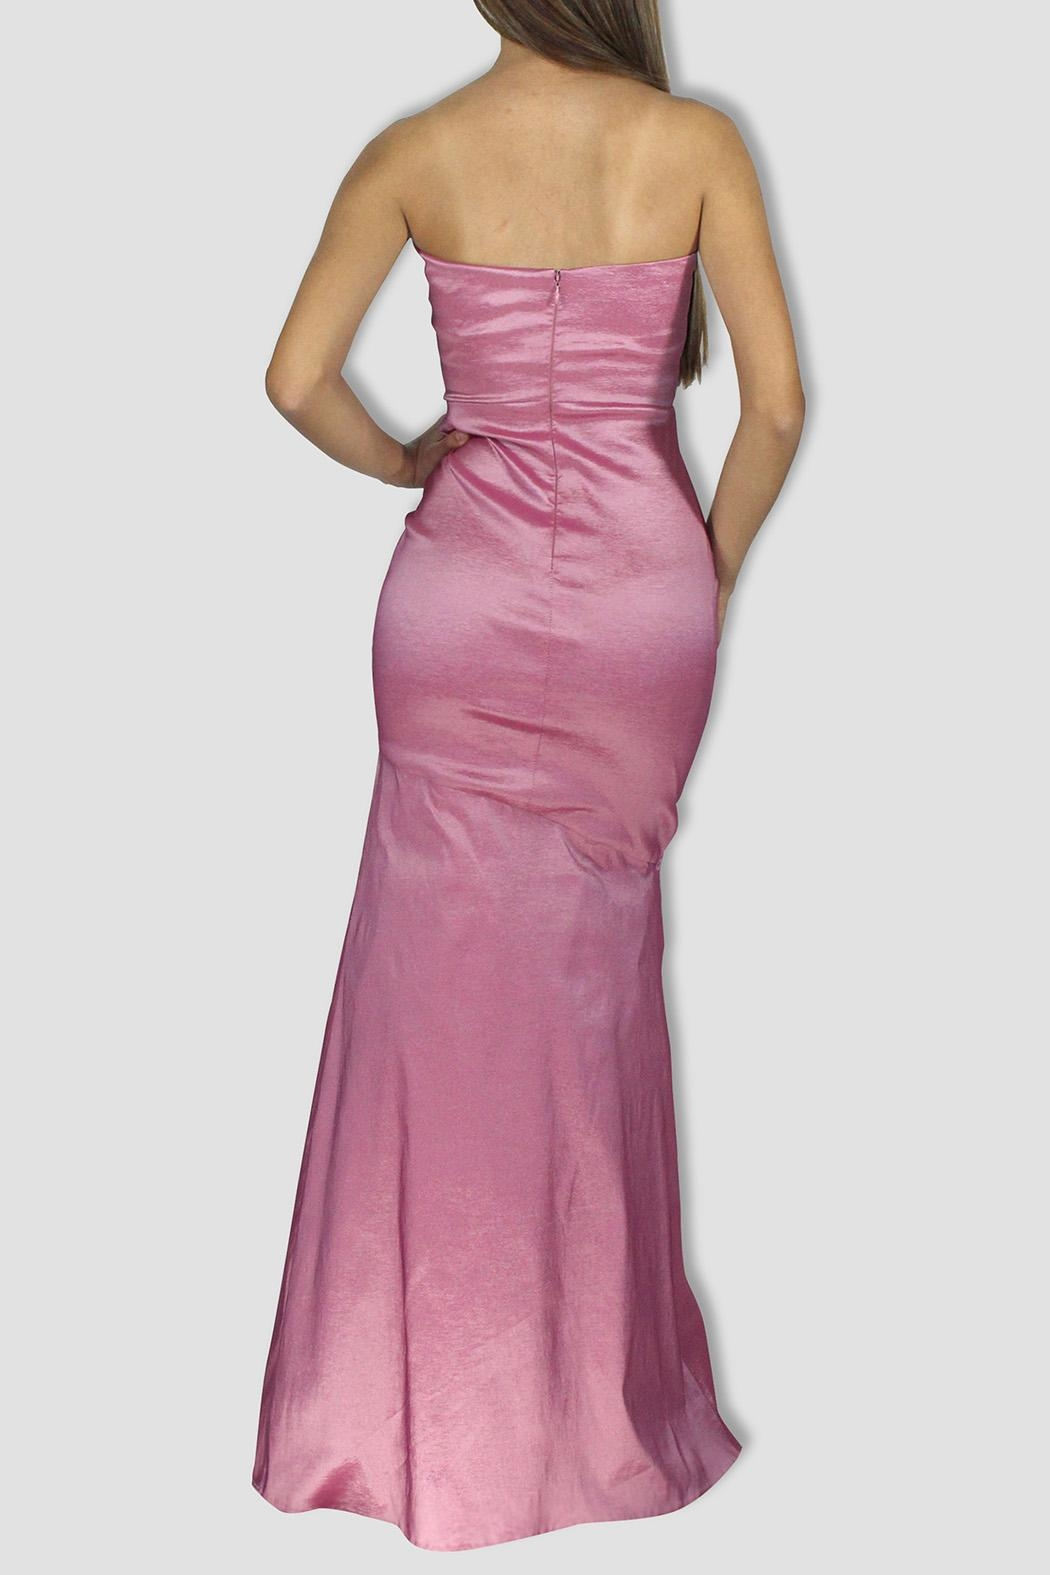 SoZu Draped Strapless Dress - Side Cropped Image